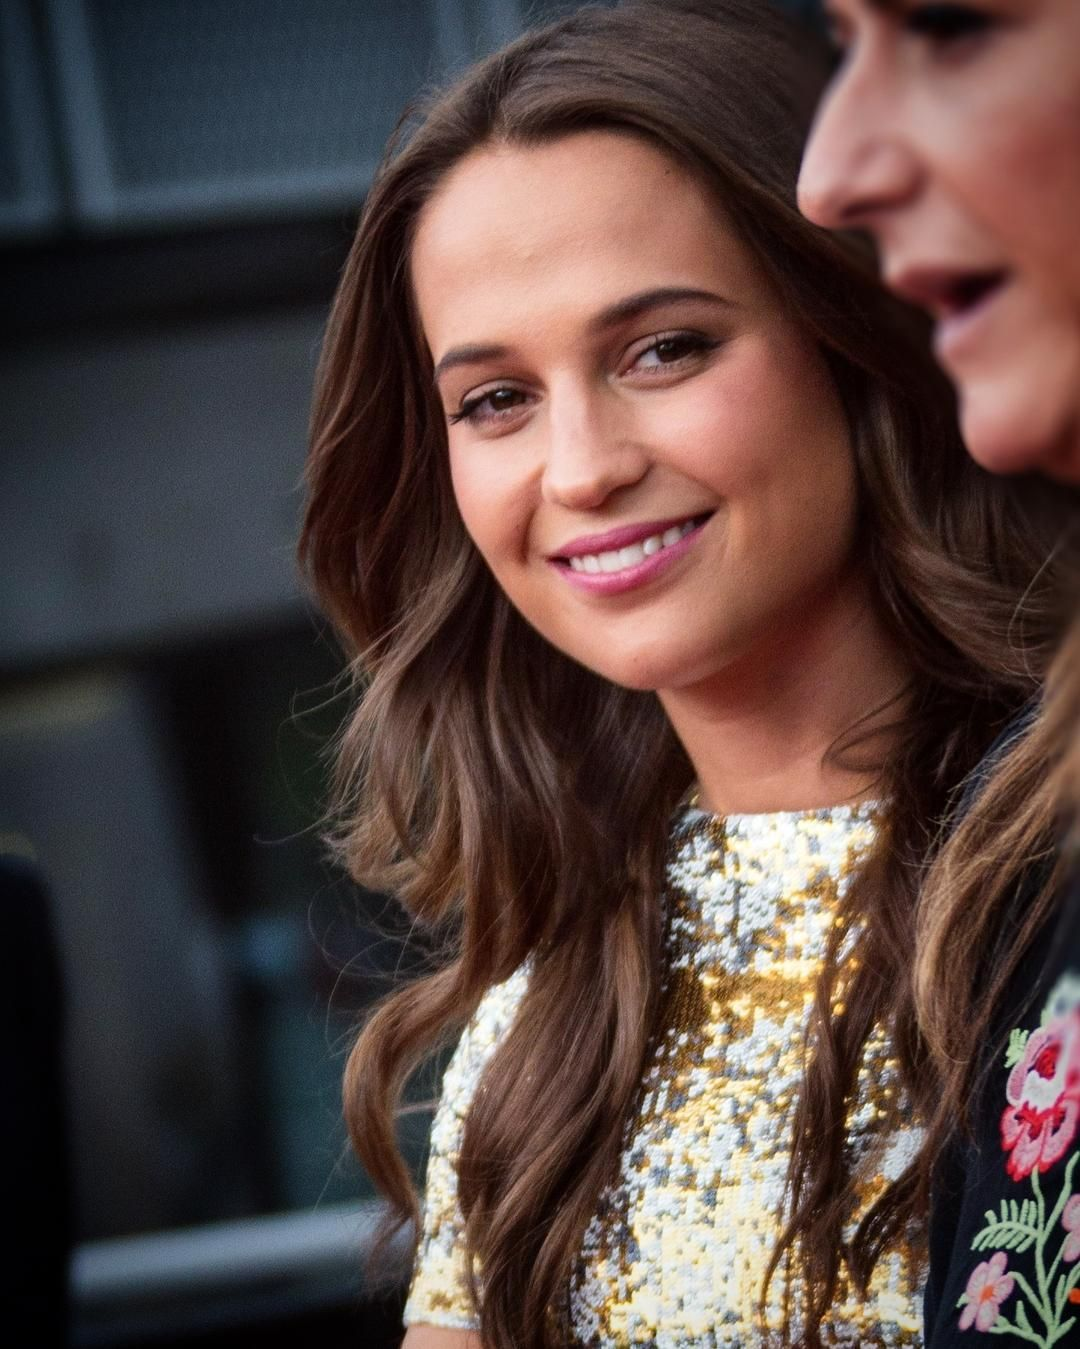 Instagram Alicia Vikander nude (66 photo), Pussy, Sideboobs, Boobs, braless 2018